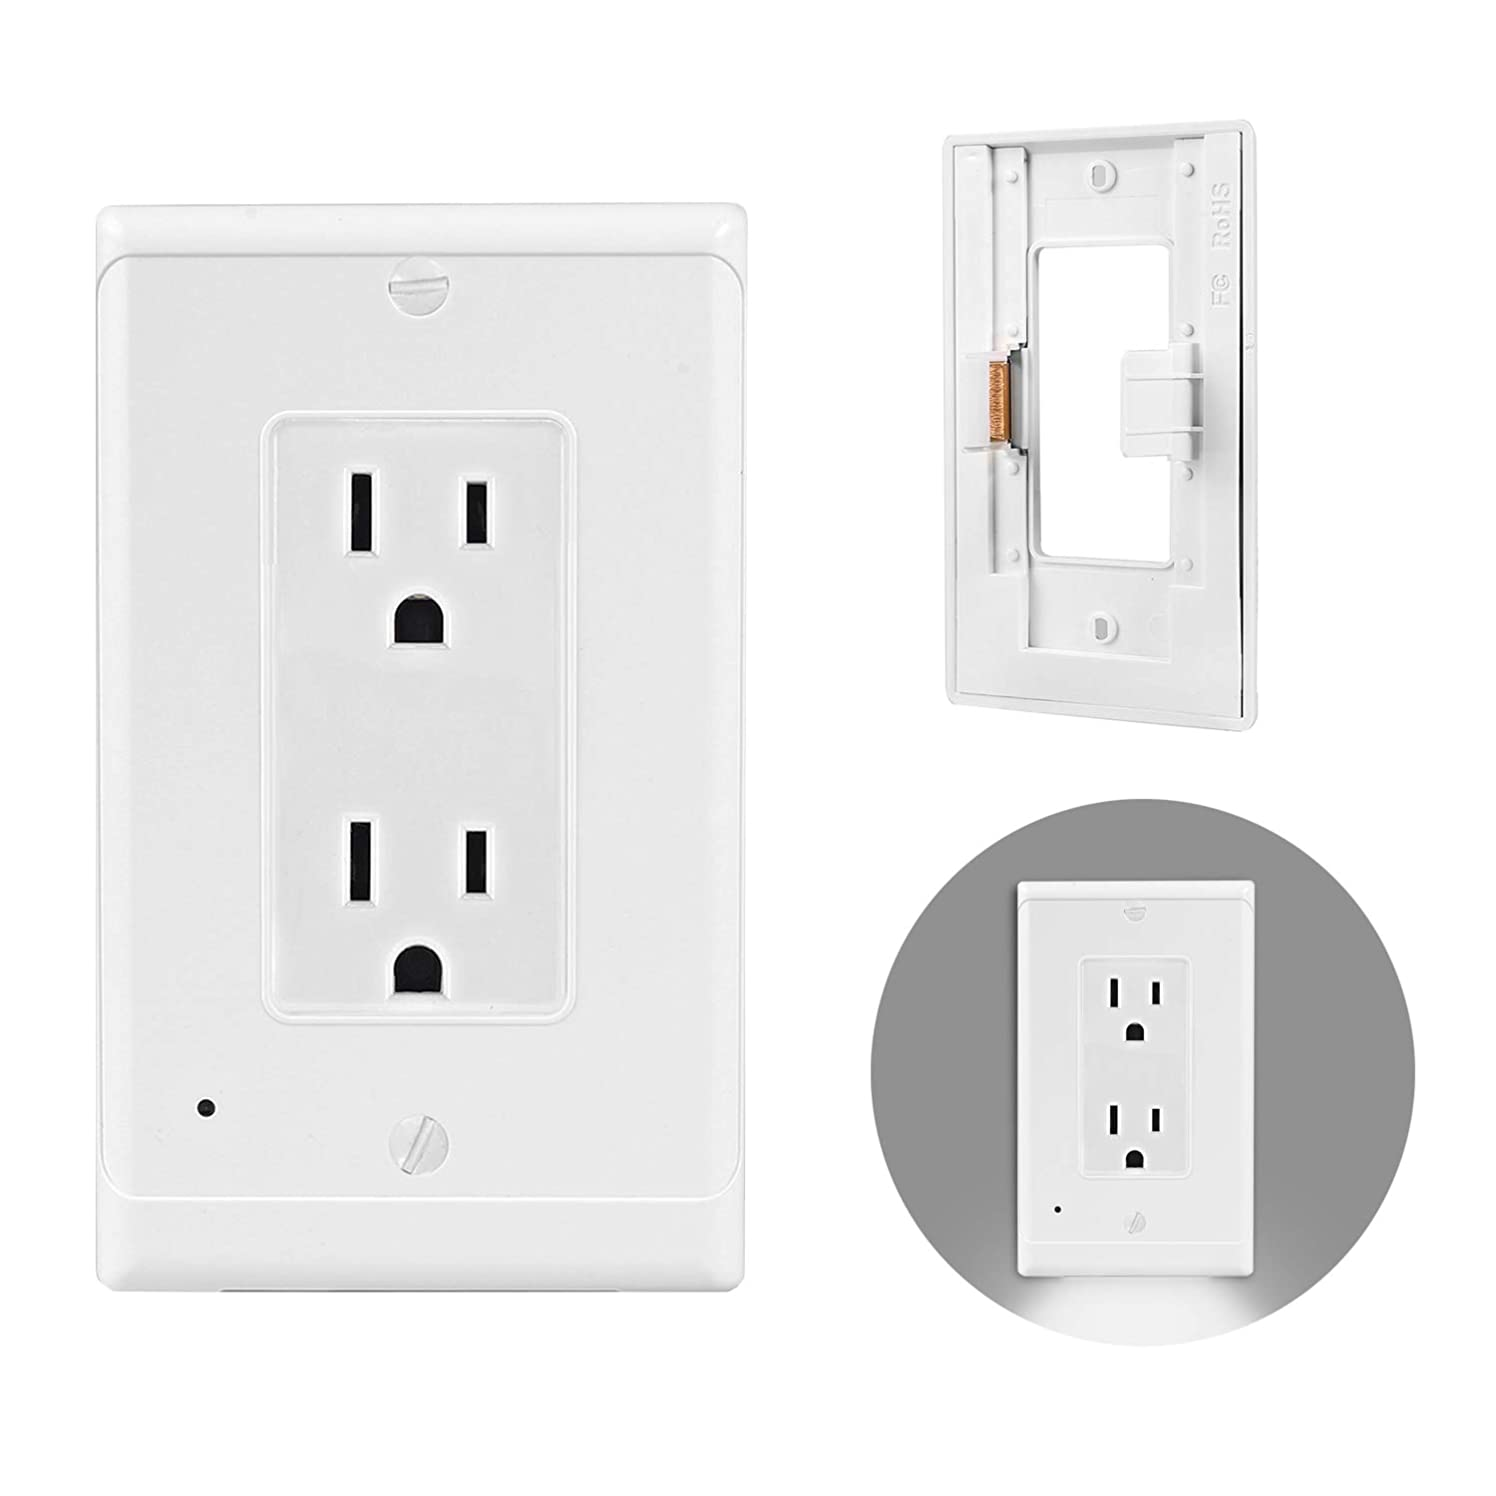 RielRons Outlet Covers with LED Light, 2 Pack Lighted Wall Plate Covers with Swicth Sensor Controlled Light for Corridor Bedroom and Decorative Wall Outlets(Duplex, Cover Only)